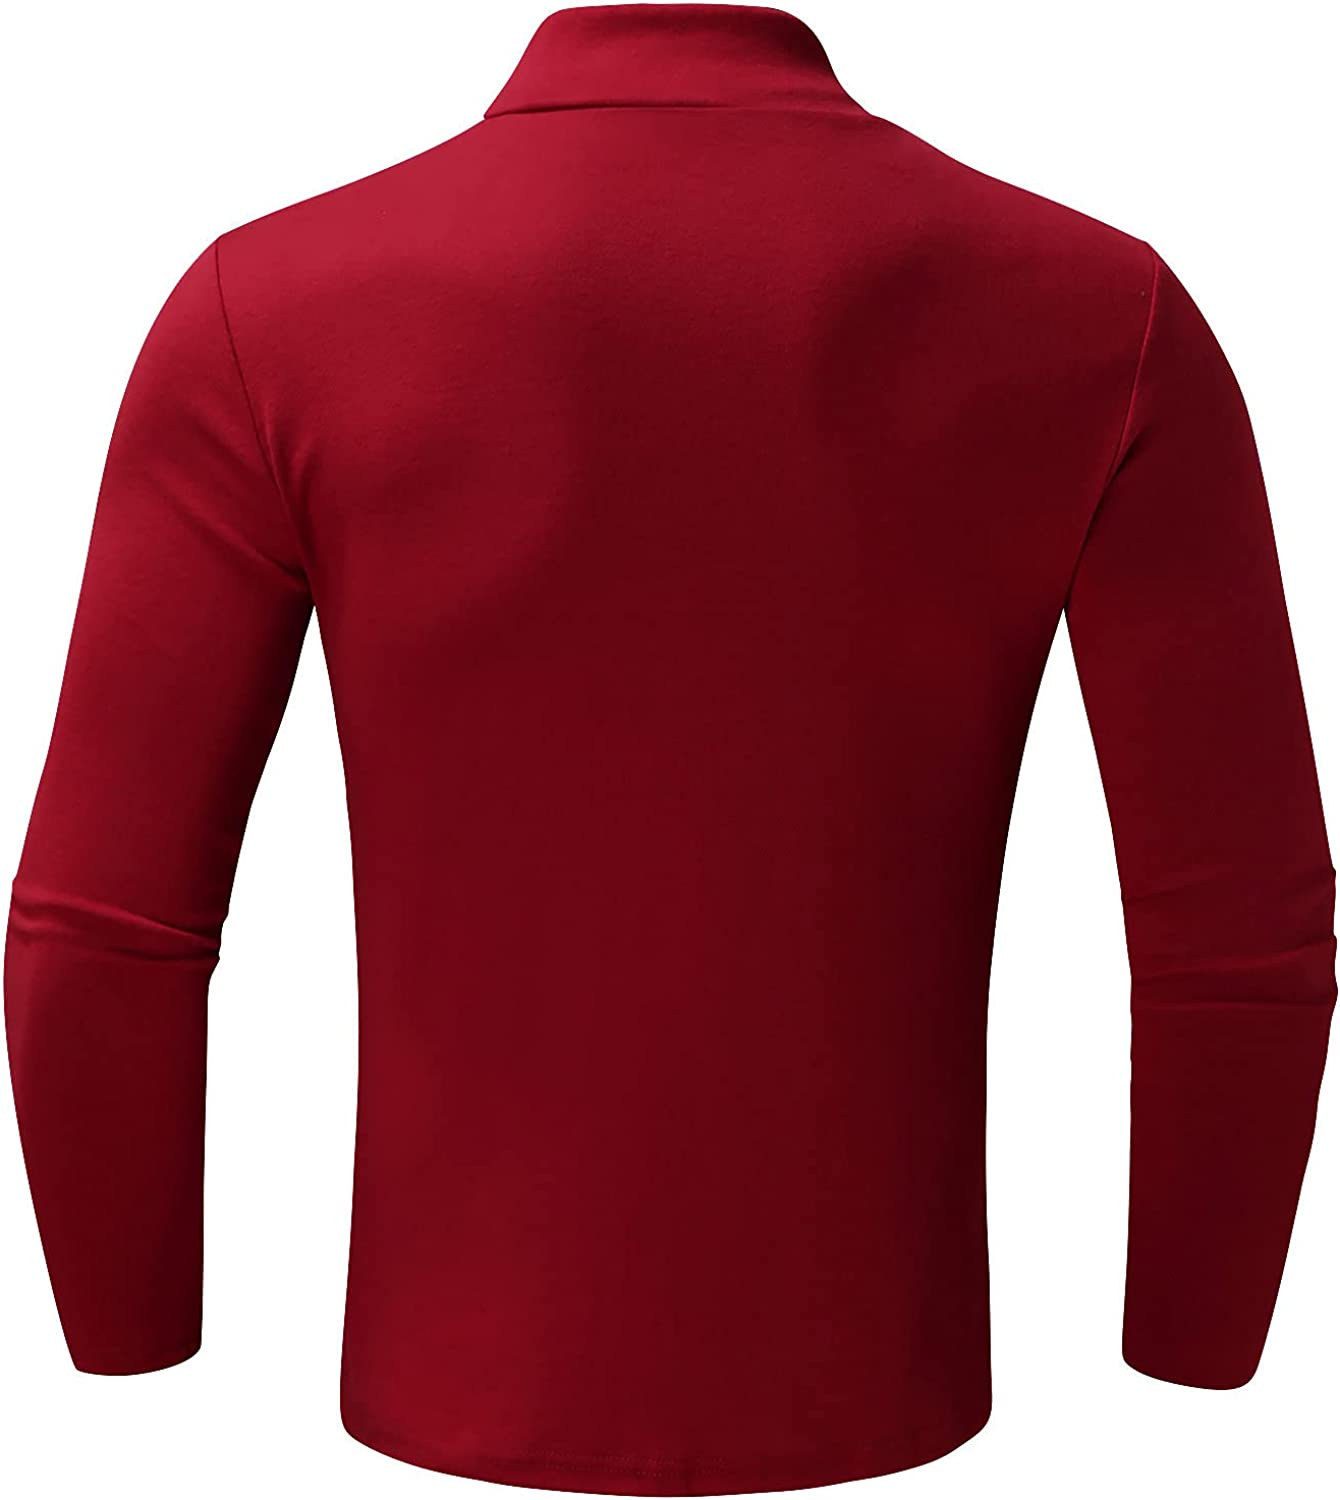 Long Sleeve Tee Shirts for Men Casual Working Solid Color Pullover Thin Tops Lightweight T-Shirt for Fall Winter